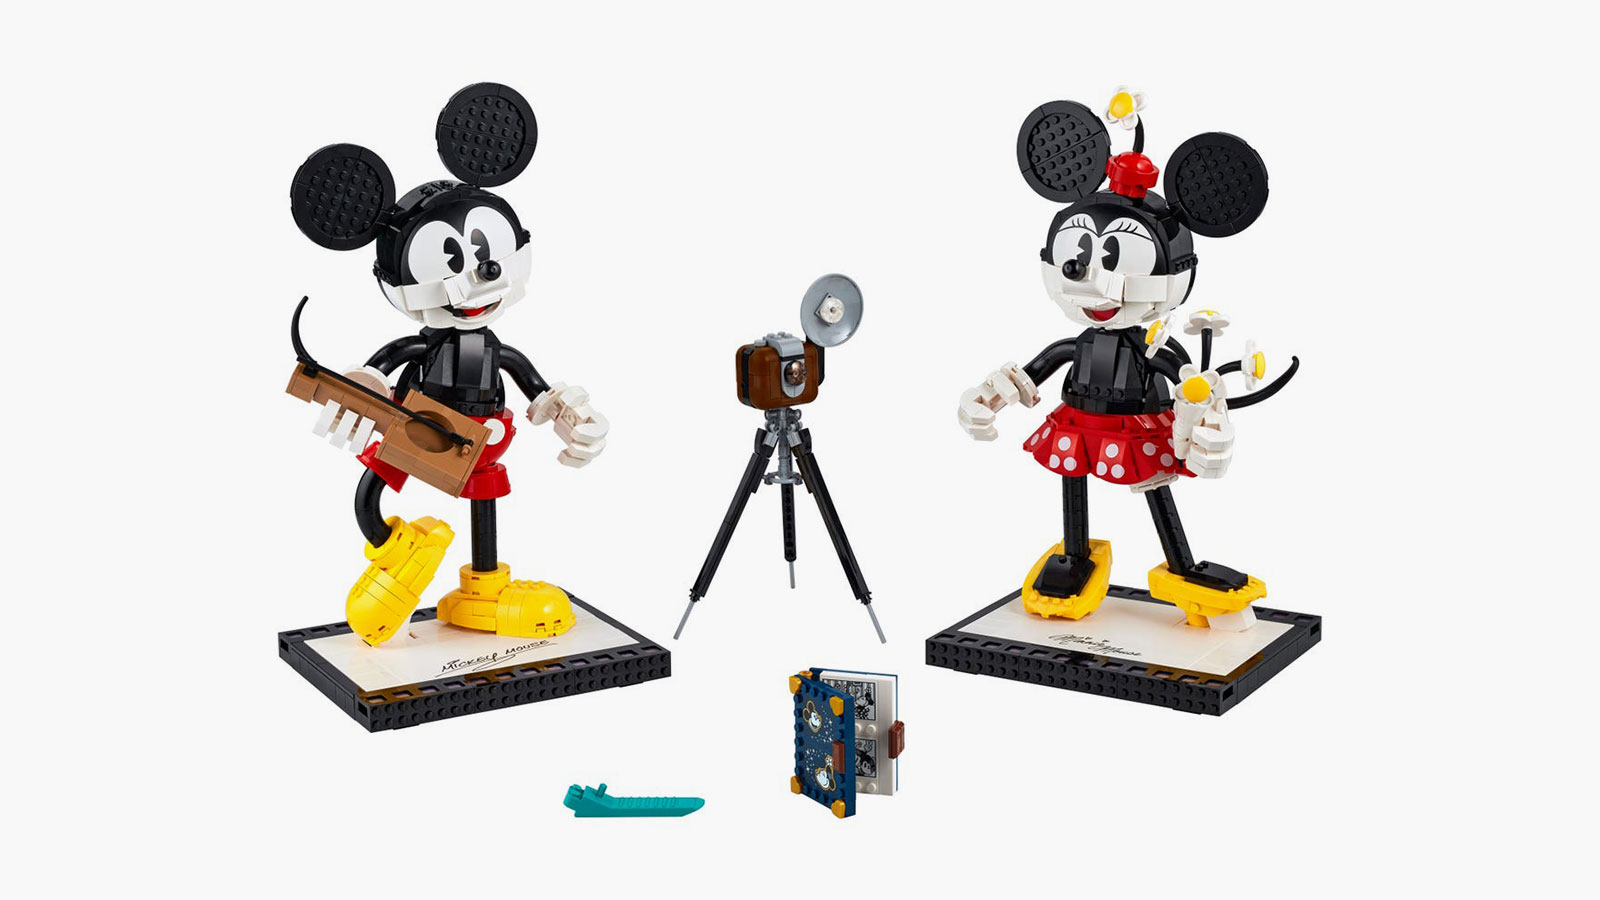 LEGO x Disney Mickey Mouse & Minnie Mouse Buildable Characters